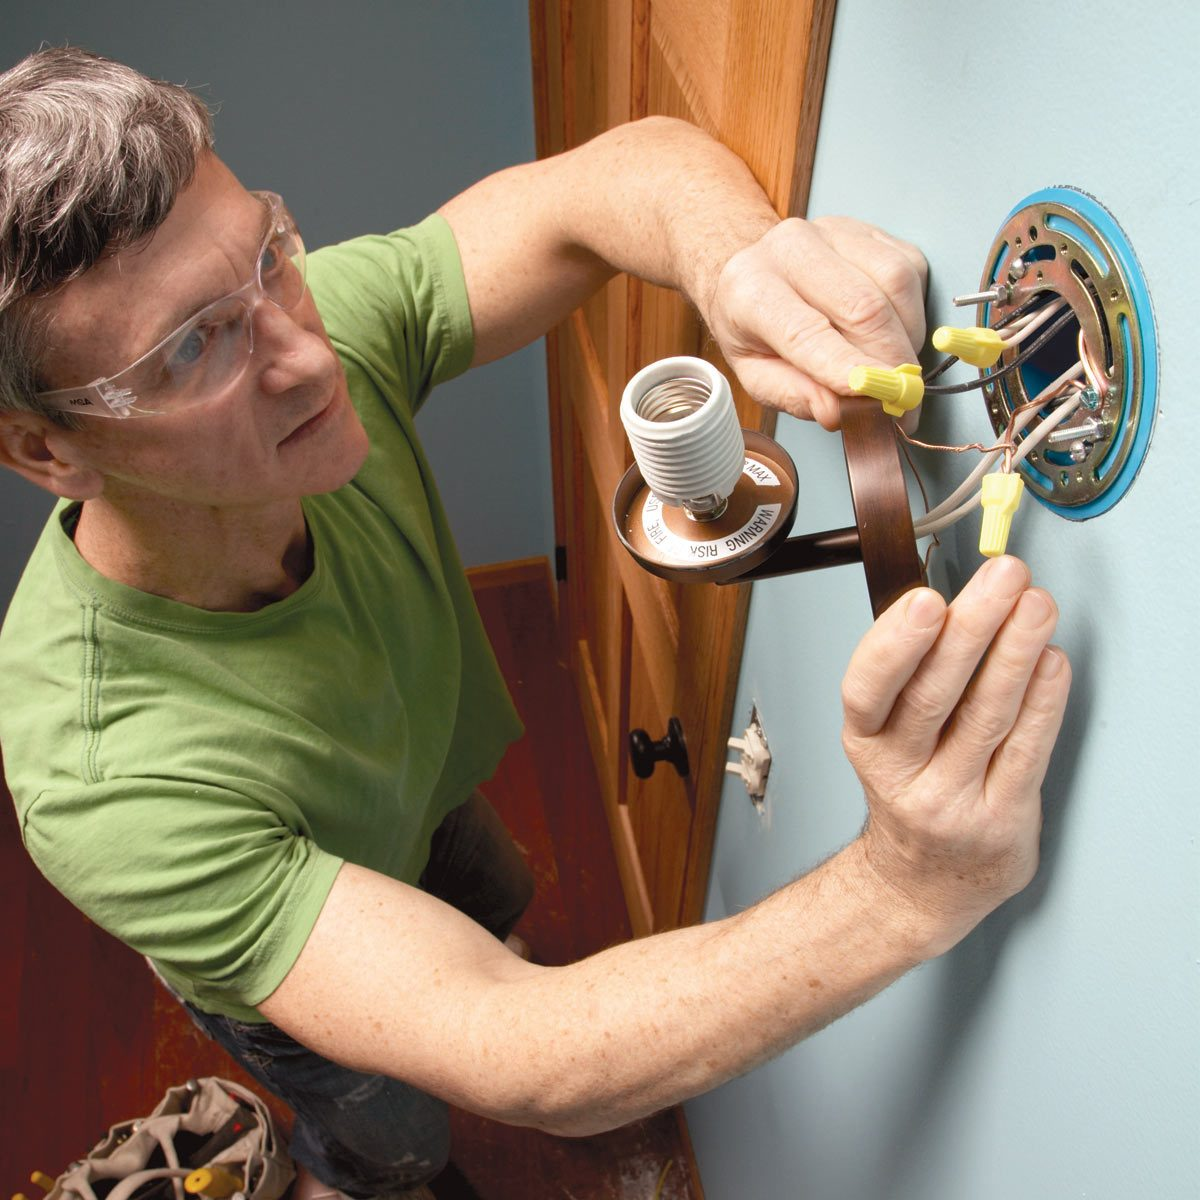 install a new light fixture featured image